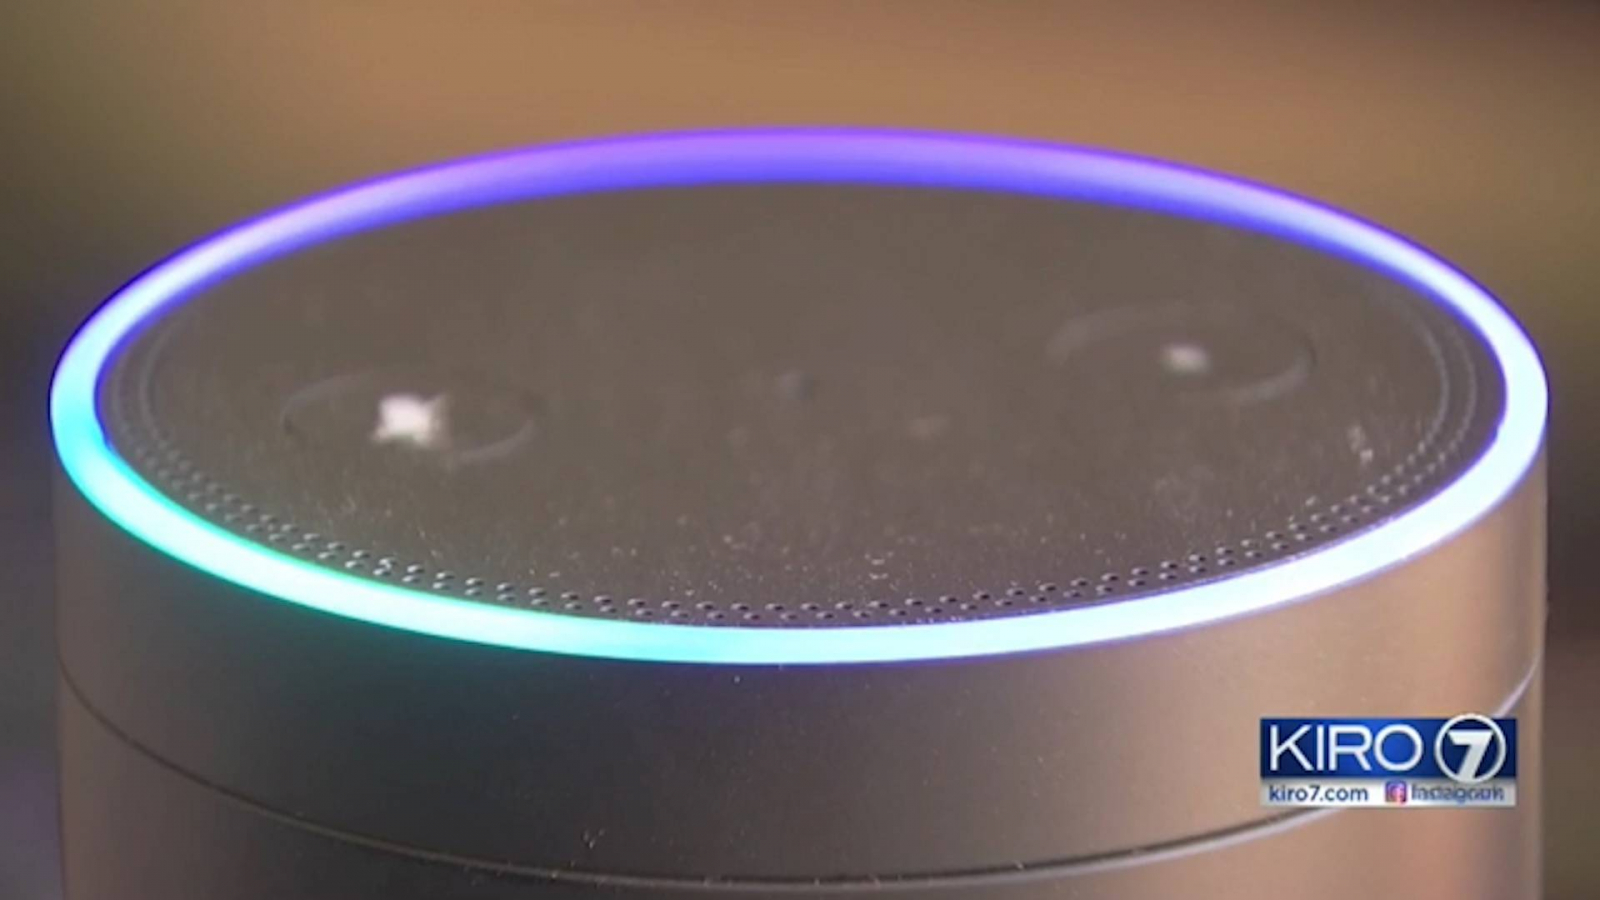 amazon-responds-after-rogue-echo-device-leaks-couples-private-chat